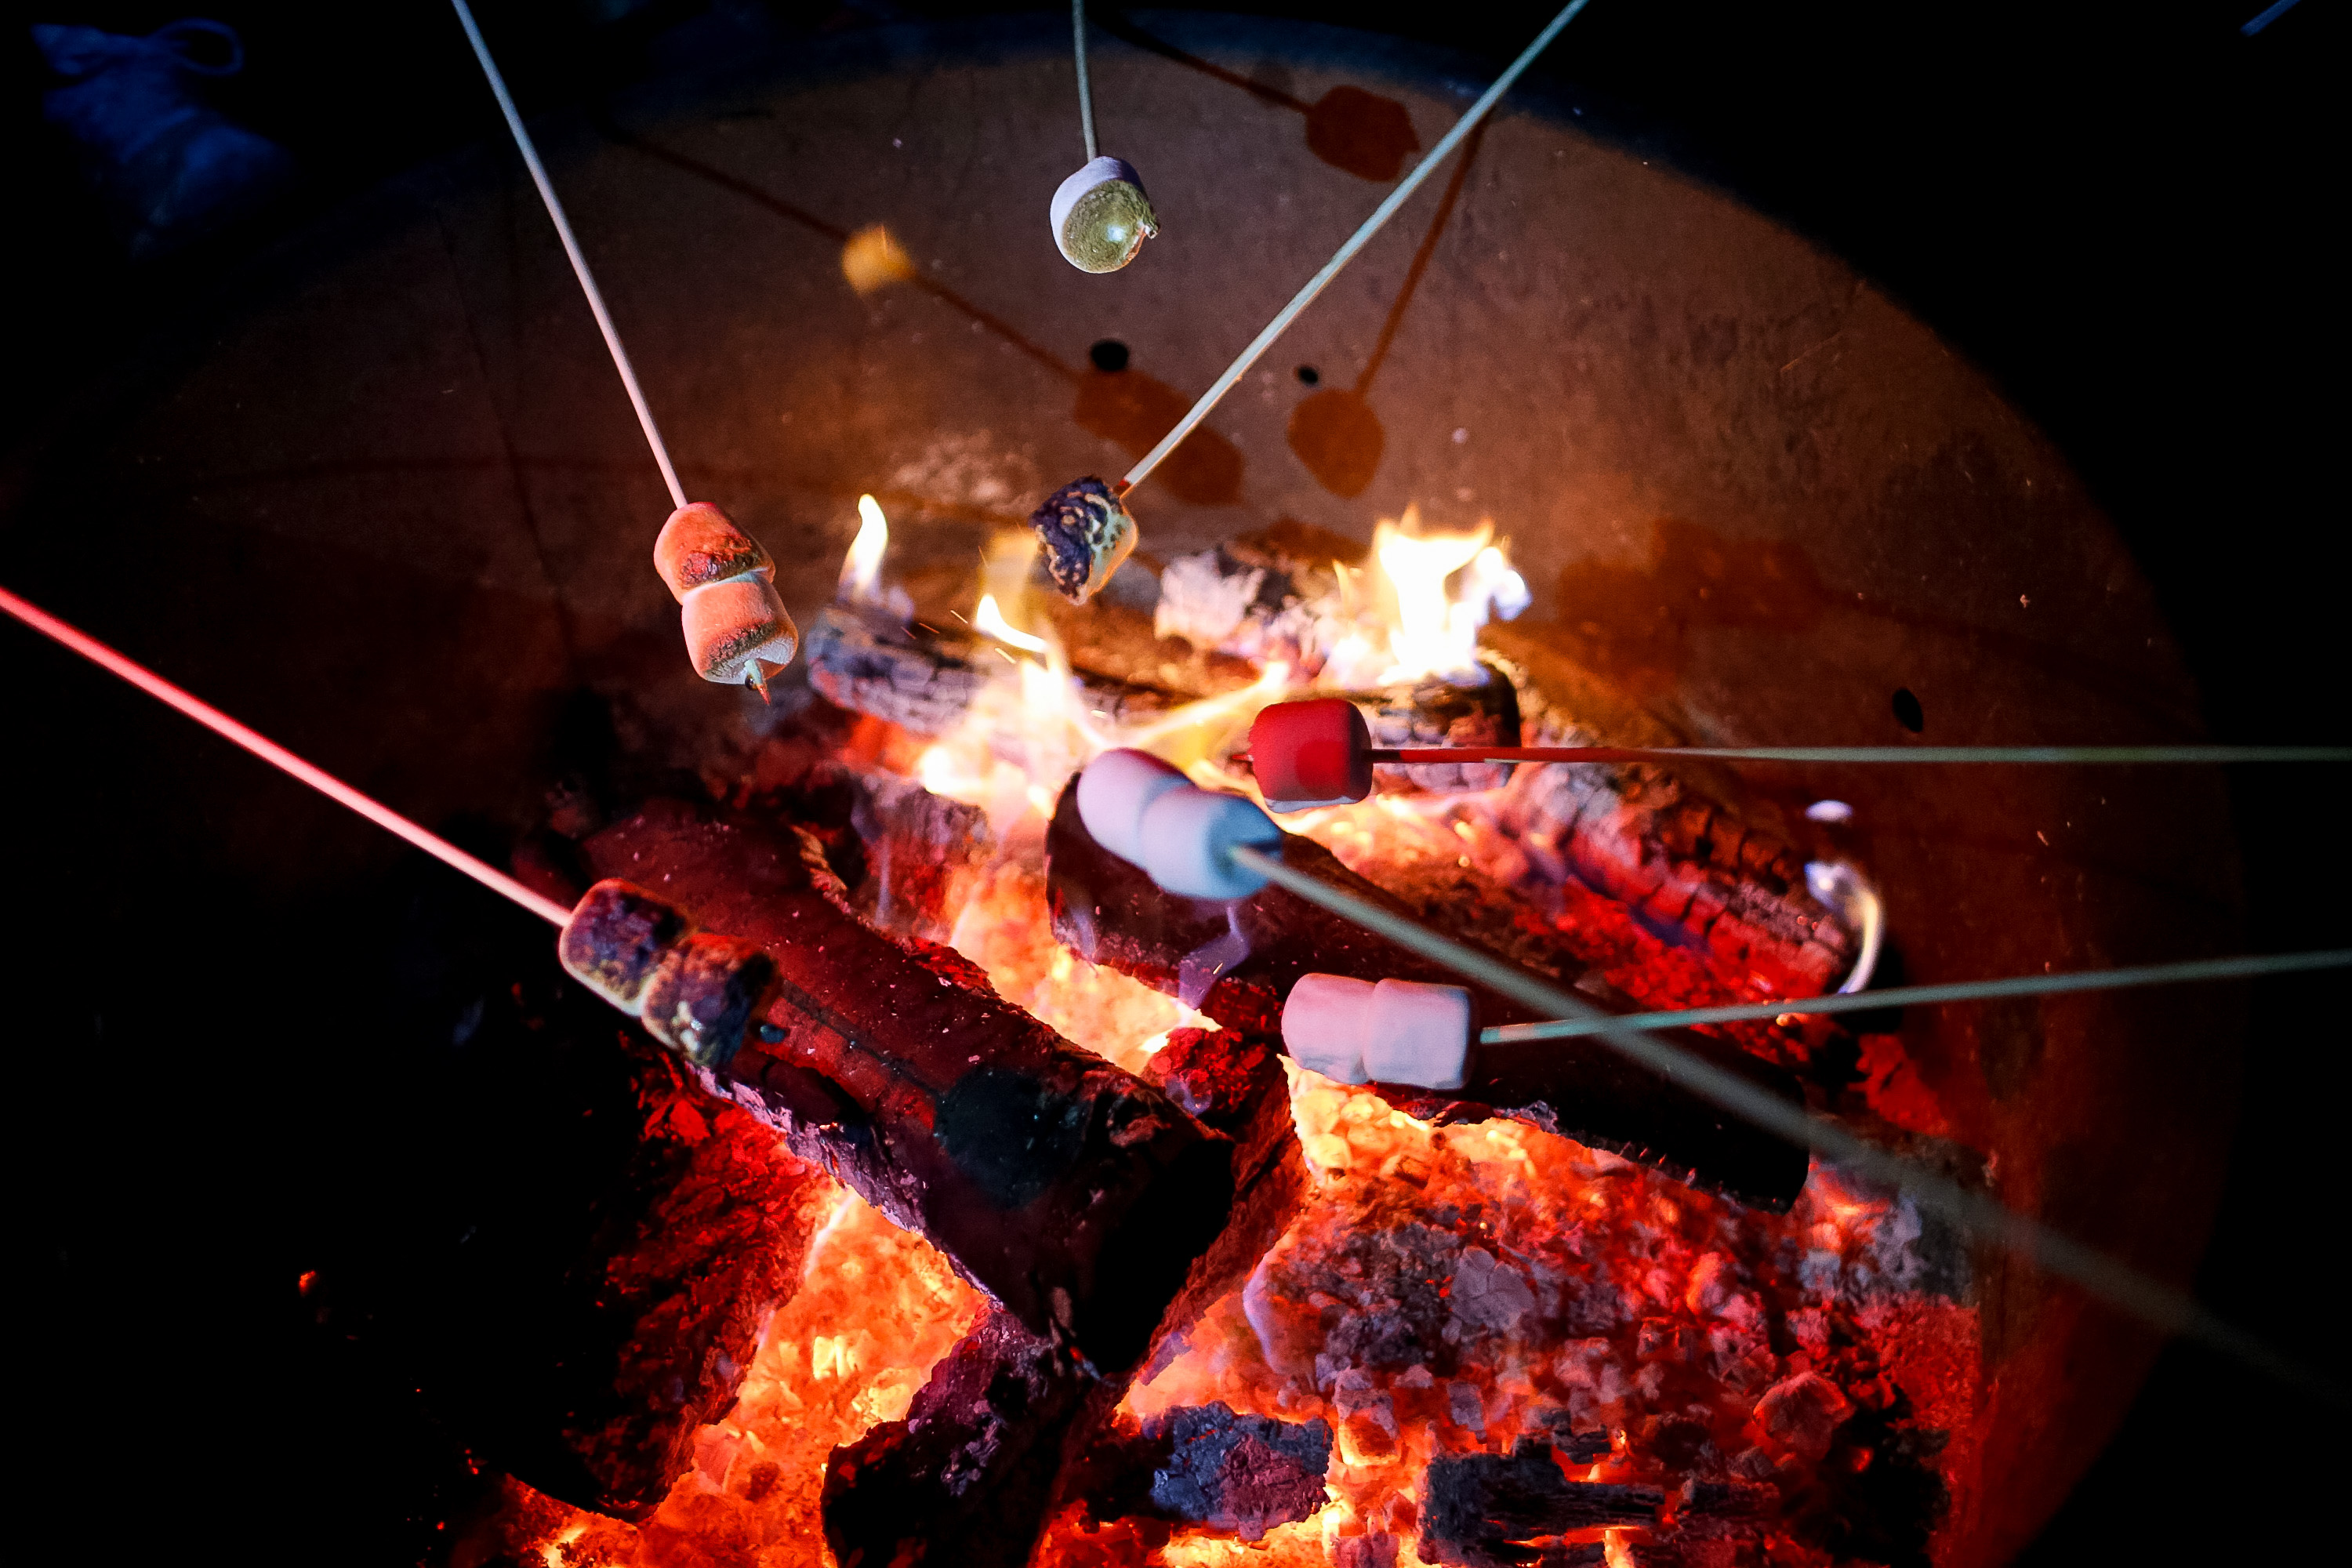 Roasting marshmallows over an open fire